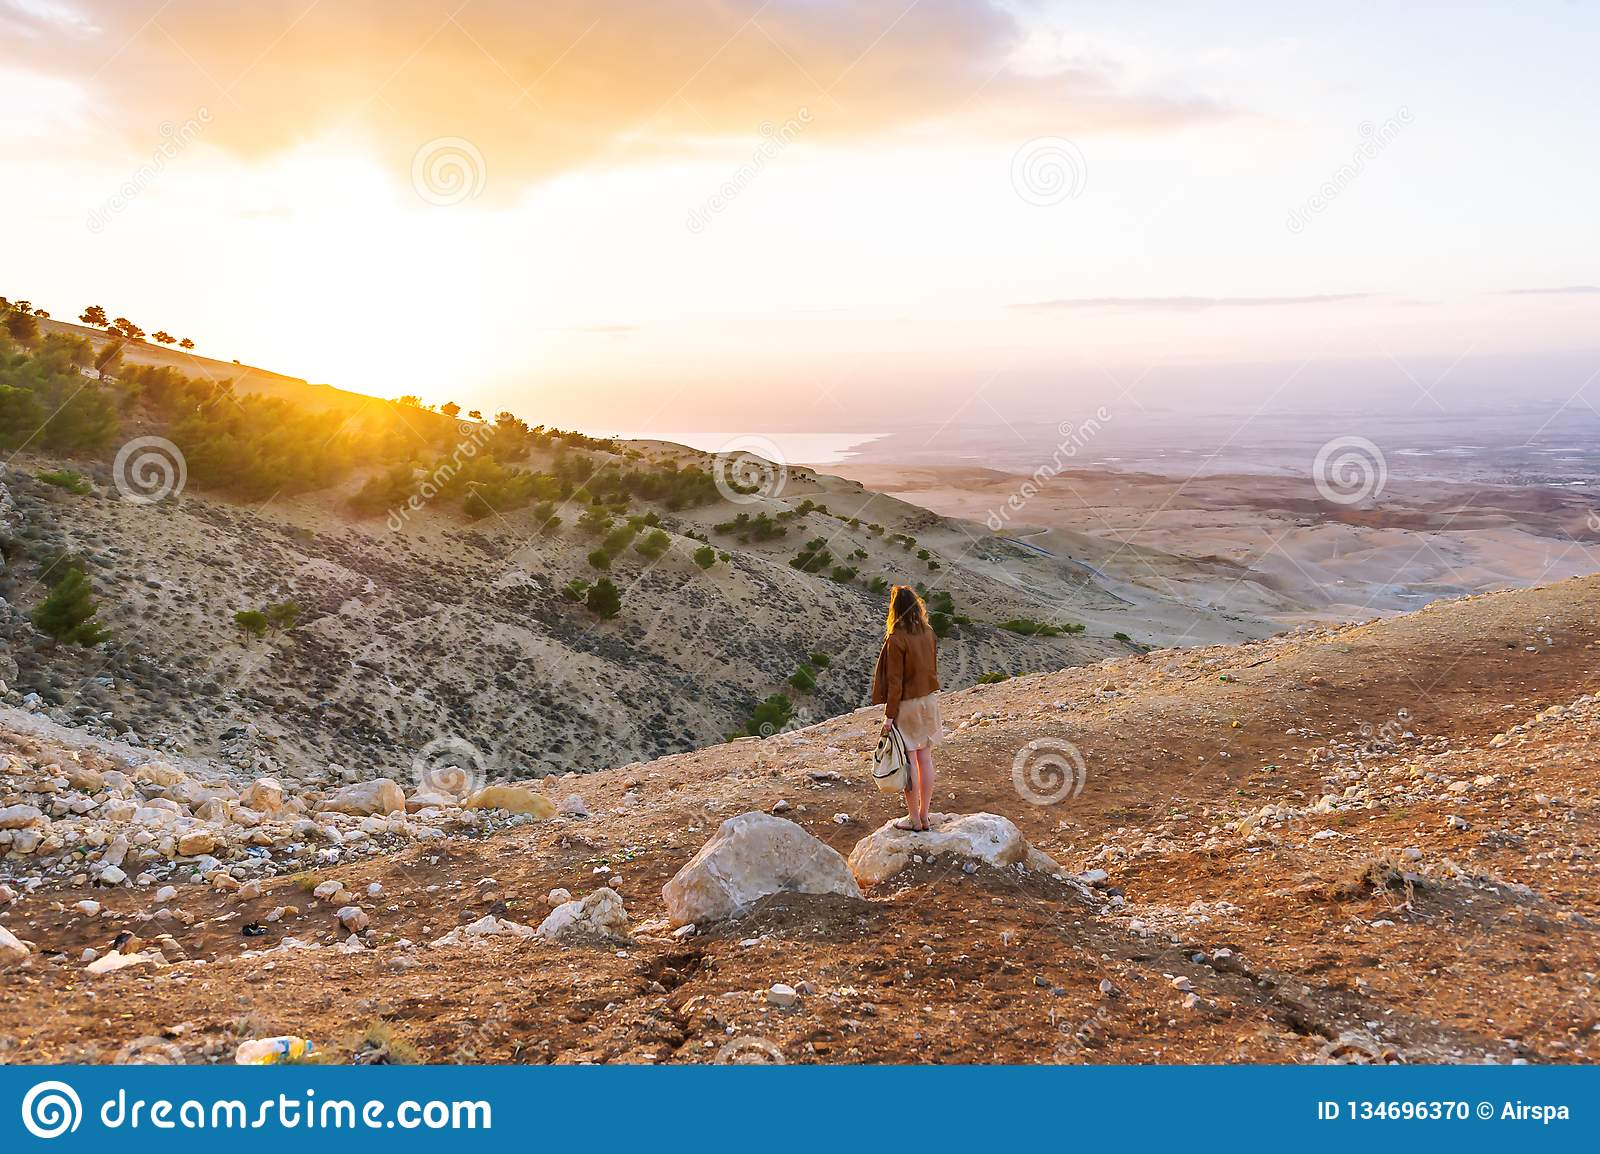 half off cfa4c 11520 Female Tourist Looking At A Beautiful Evening Landscape In ...